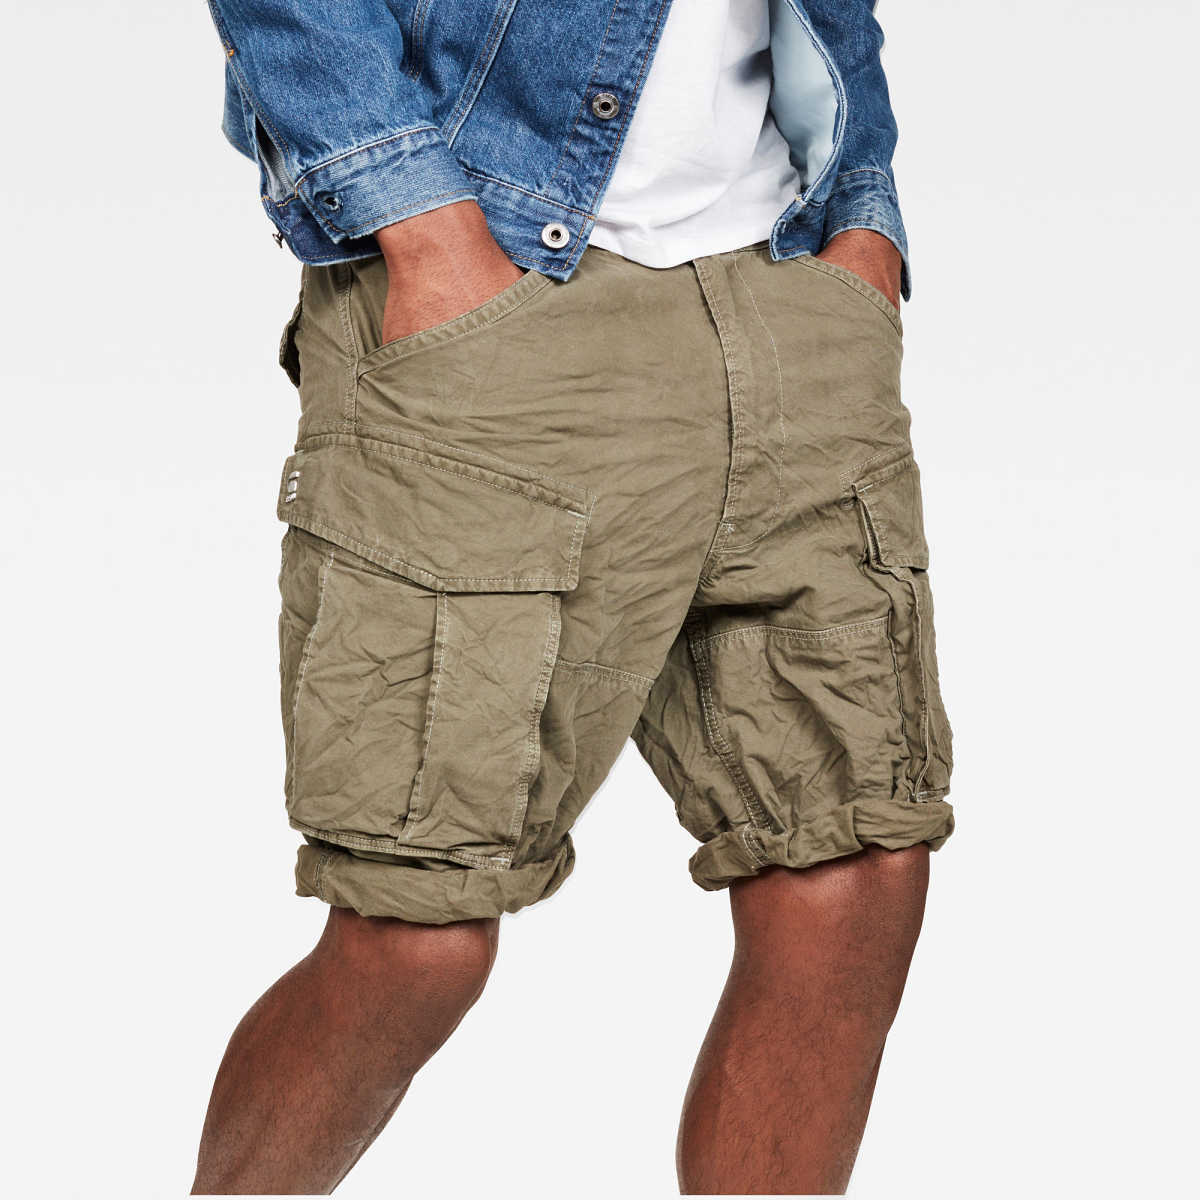 G-Star Male Rovic X-Relaxed Trainer Short Shorts Relaxed Green USA - GOOFASH - Mens SHORTS